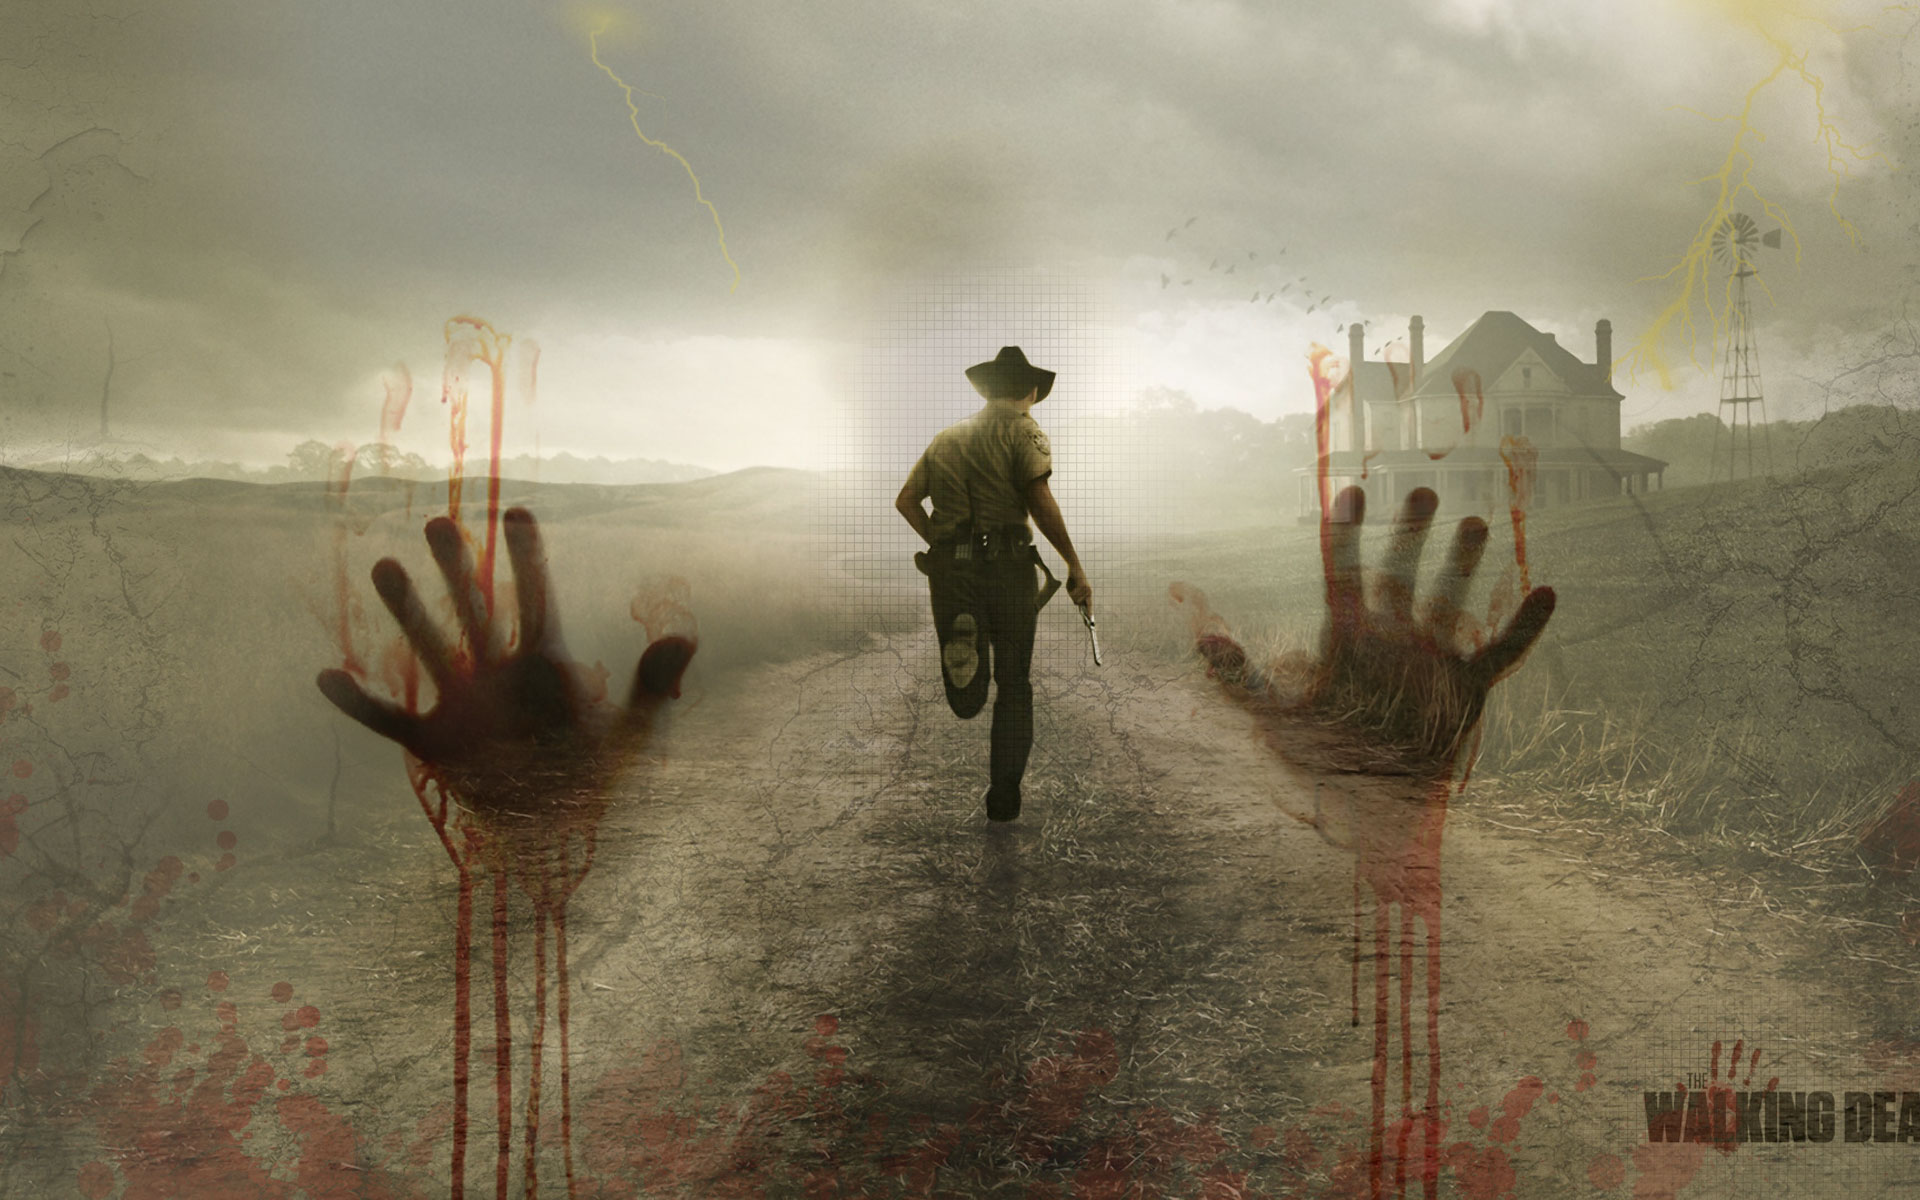 Wallpapers Of The Walking Dead